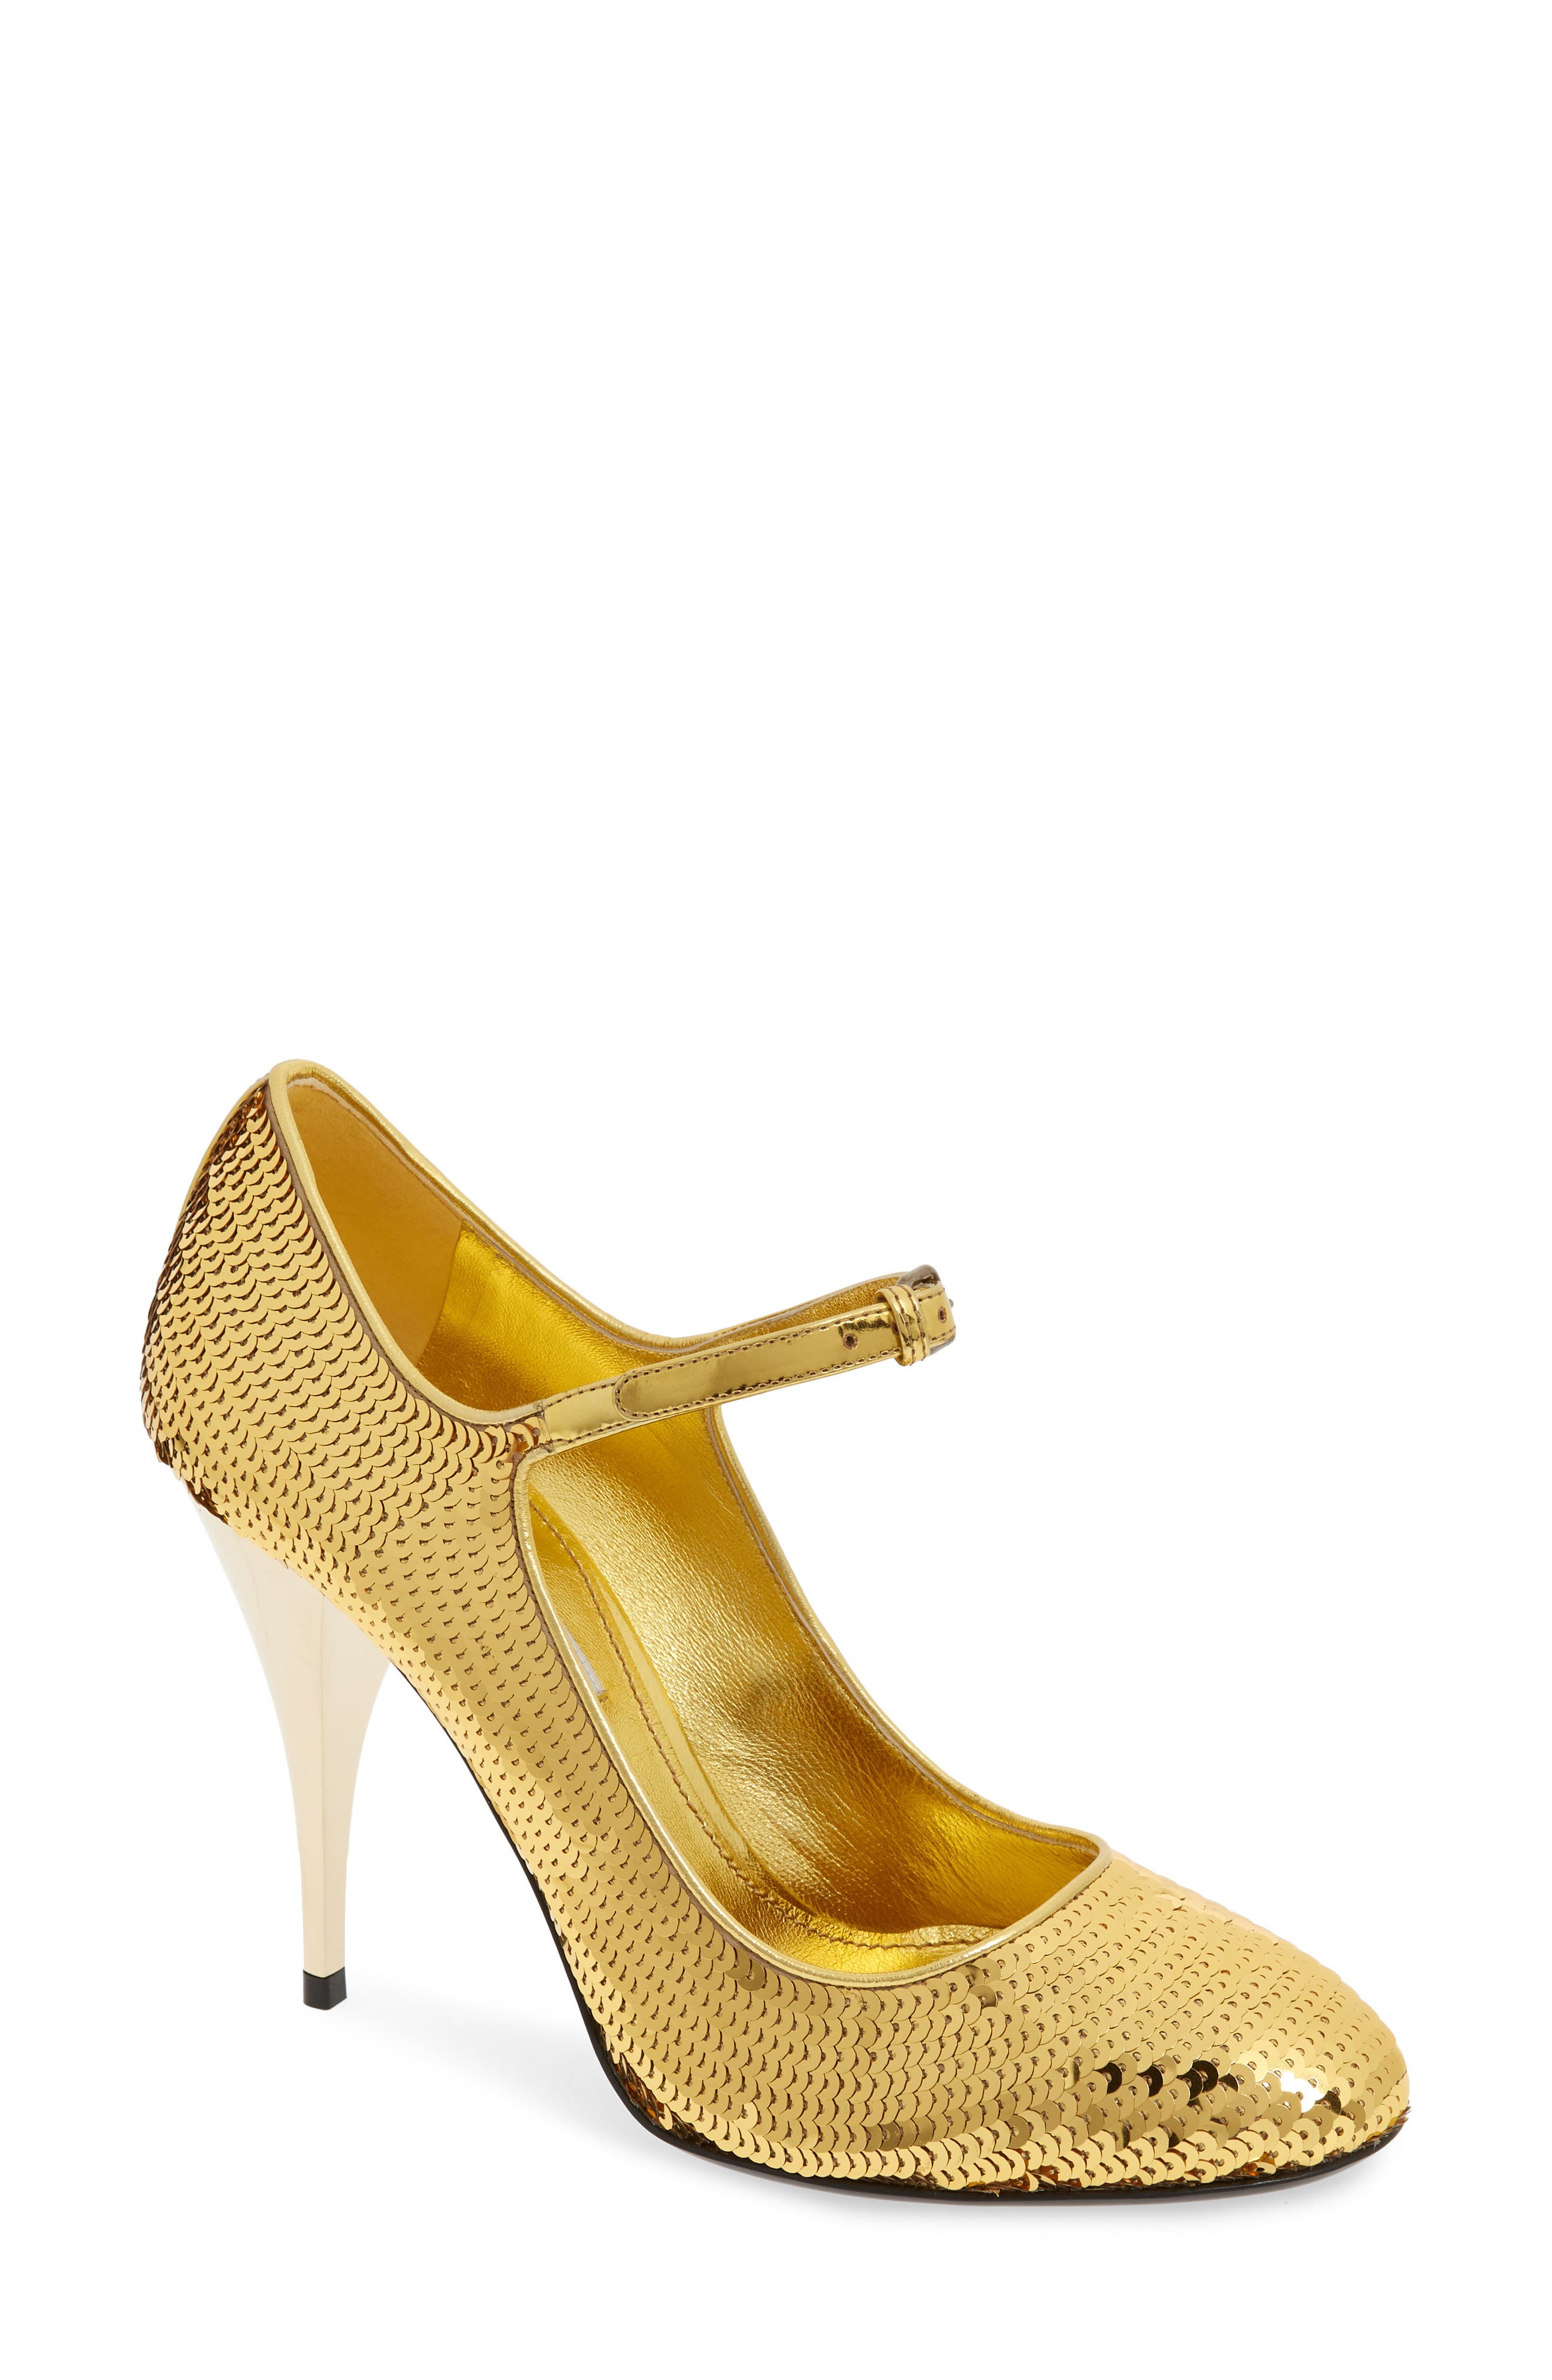 Sequin Mary Jane Pump,                         Main,                         color, GOLD